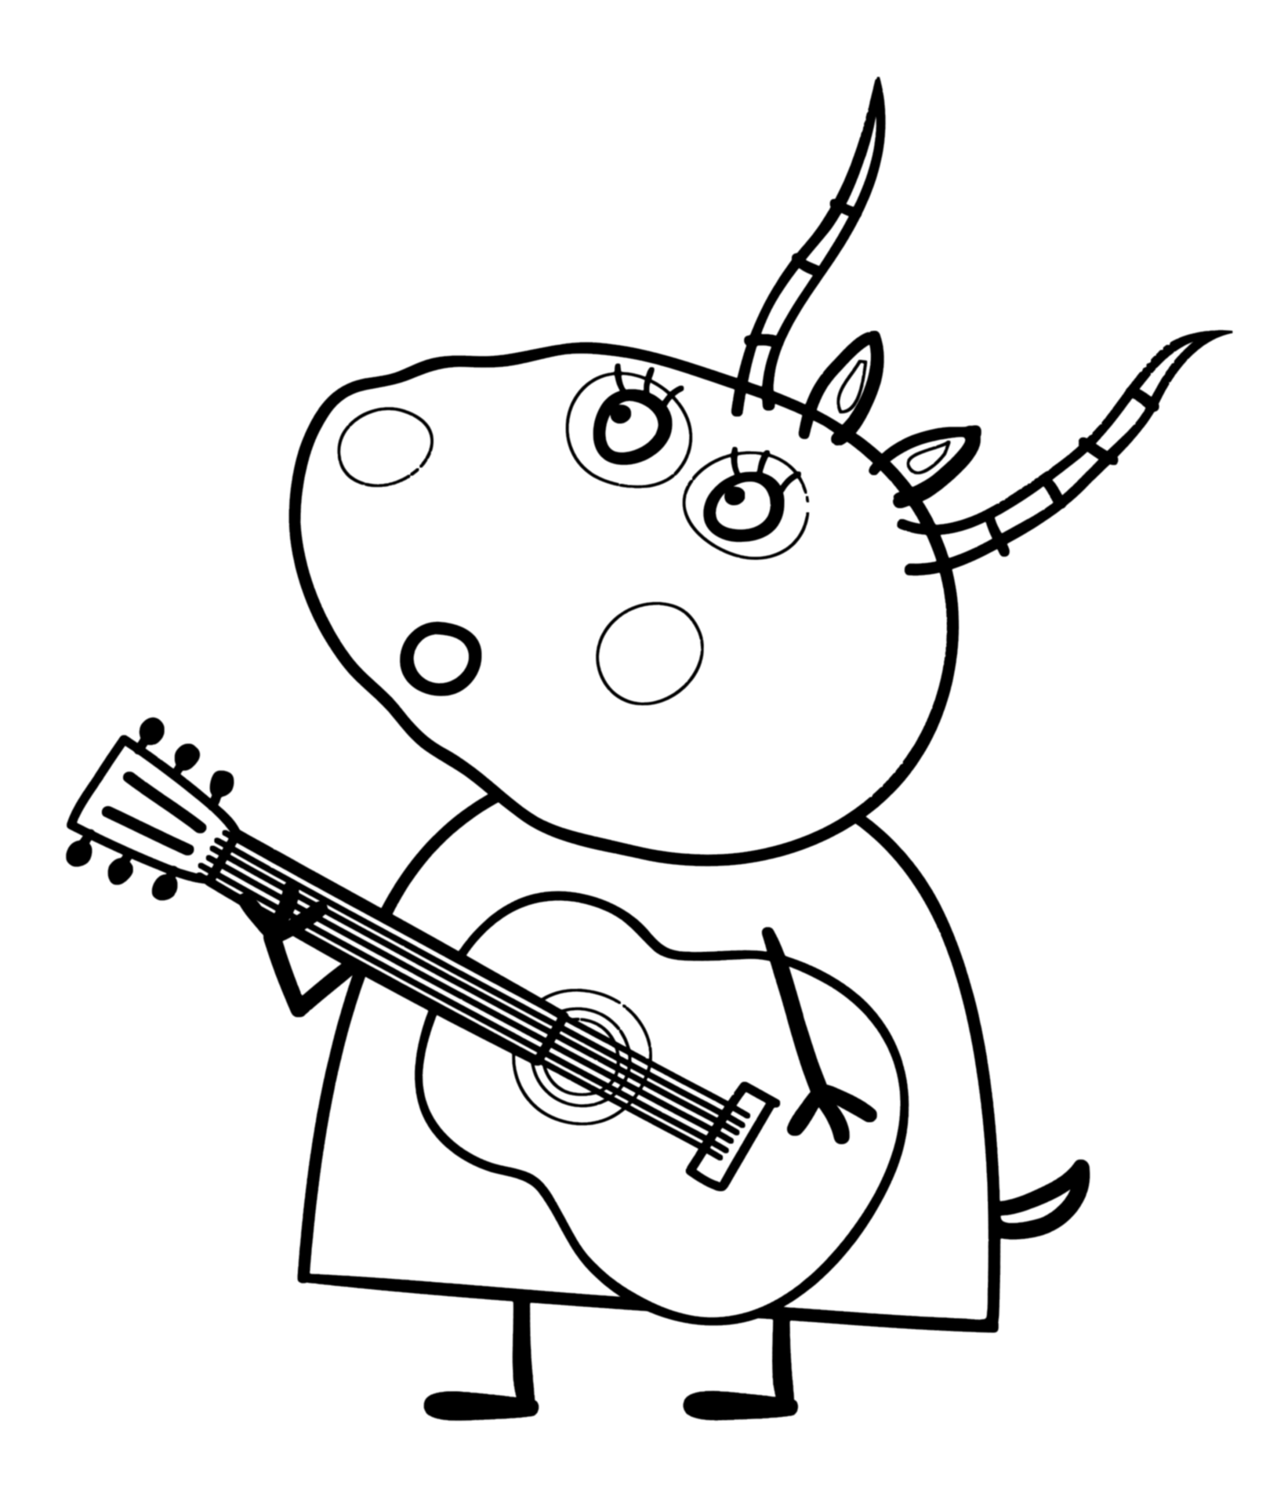 Best Peppa Pig And Friends Coloring Pages 1 1277×1500